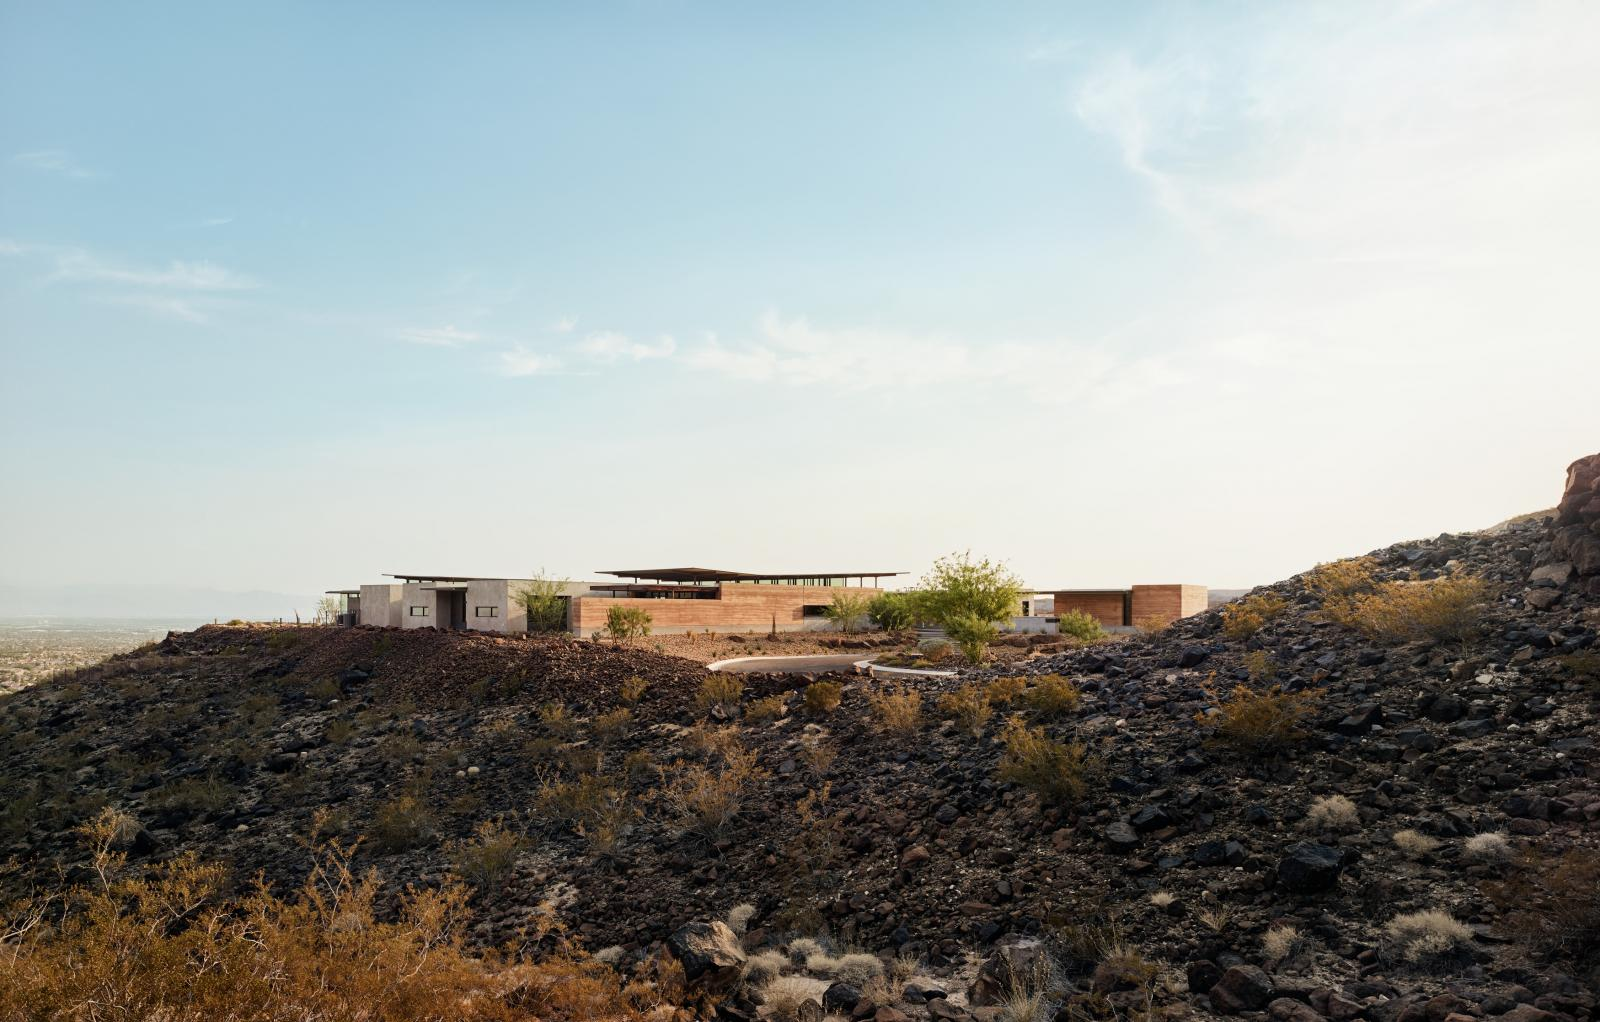 Horizon House uses rammed earth as the primary material which is designed to reflect the surrounding natural topography